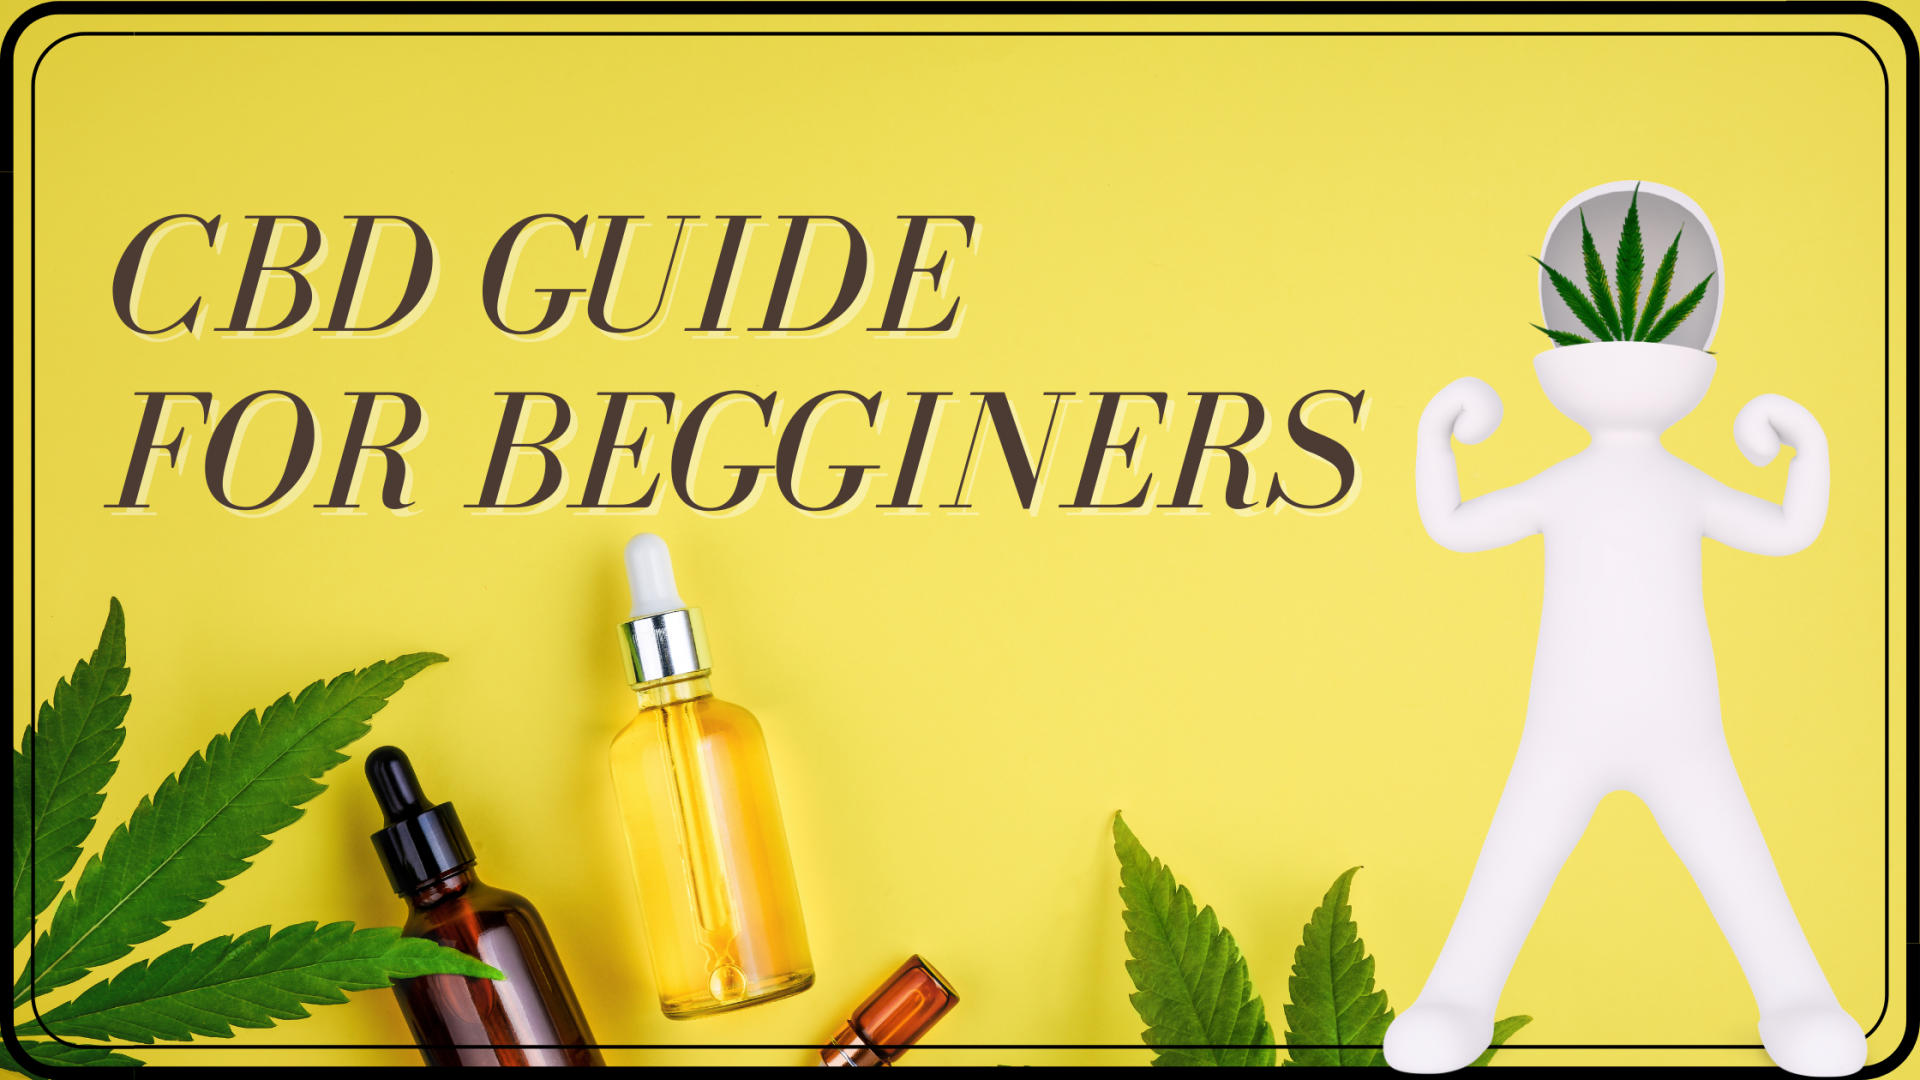 CBD guide for beginners - What is CBD